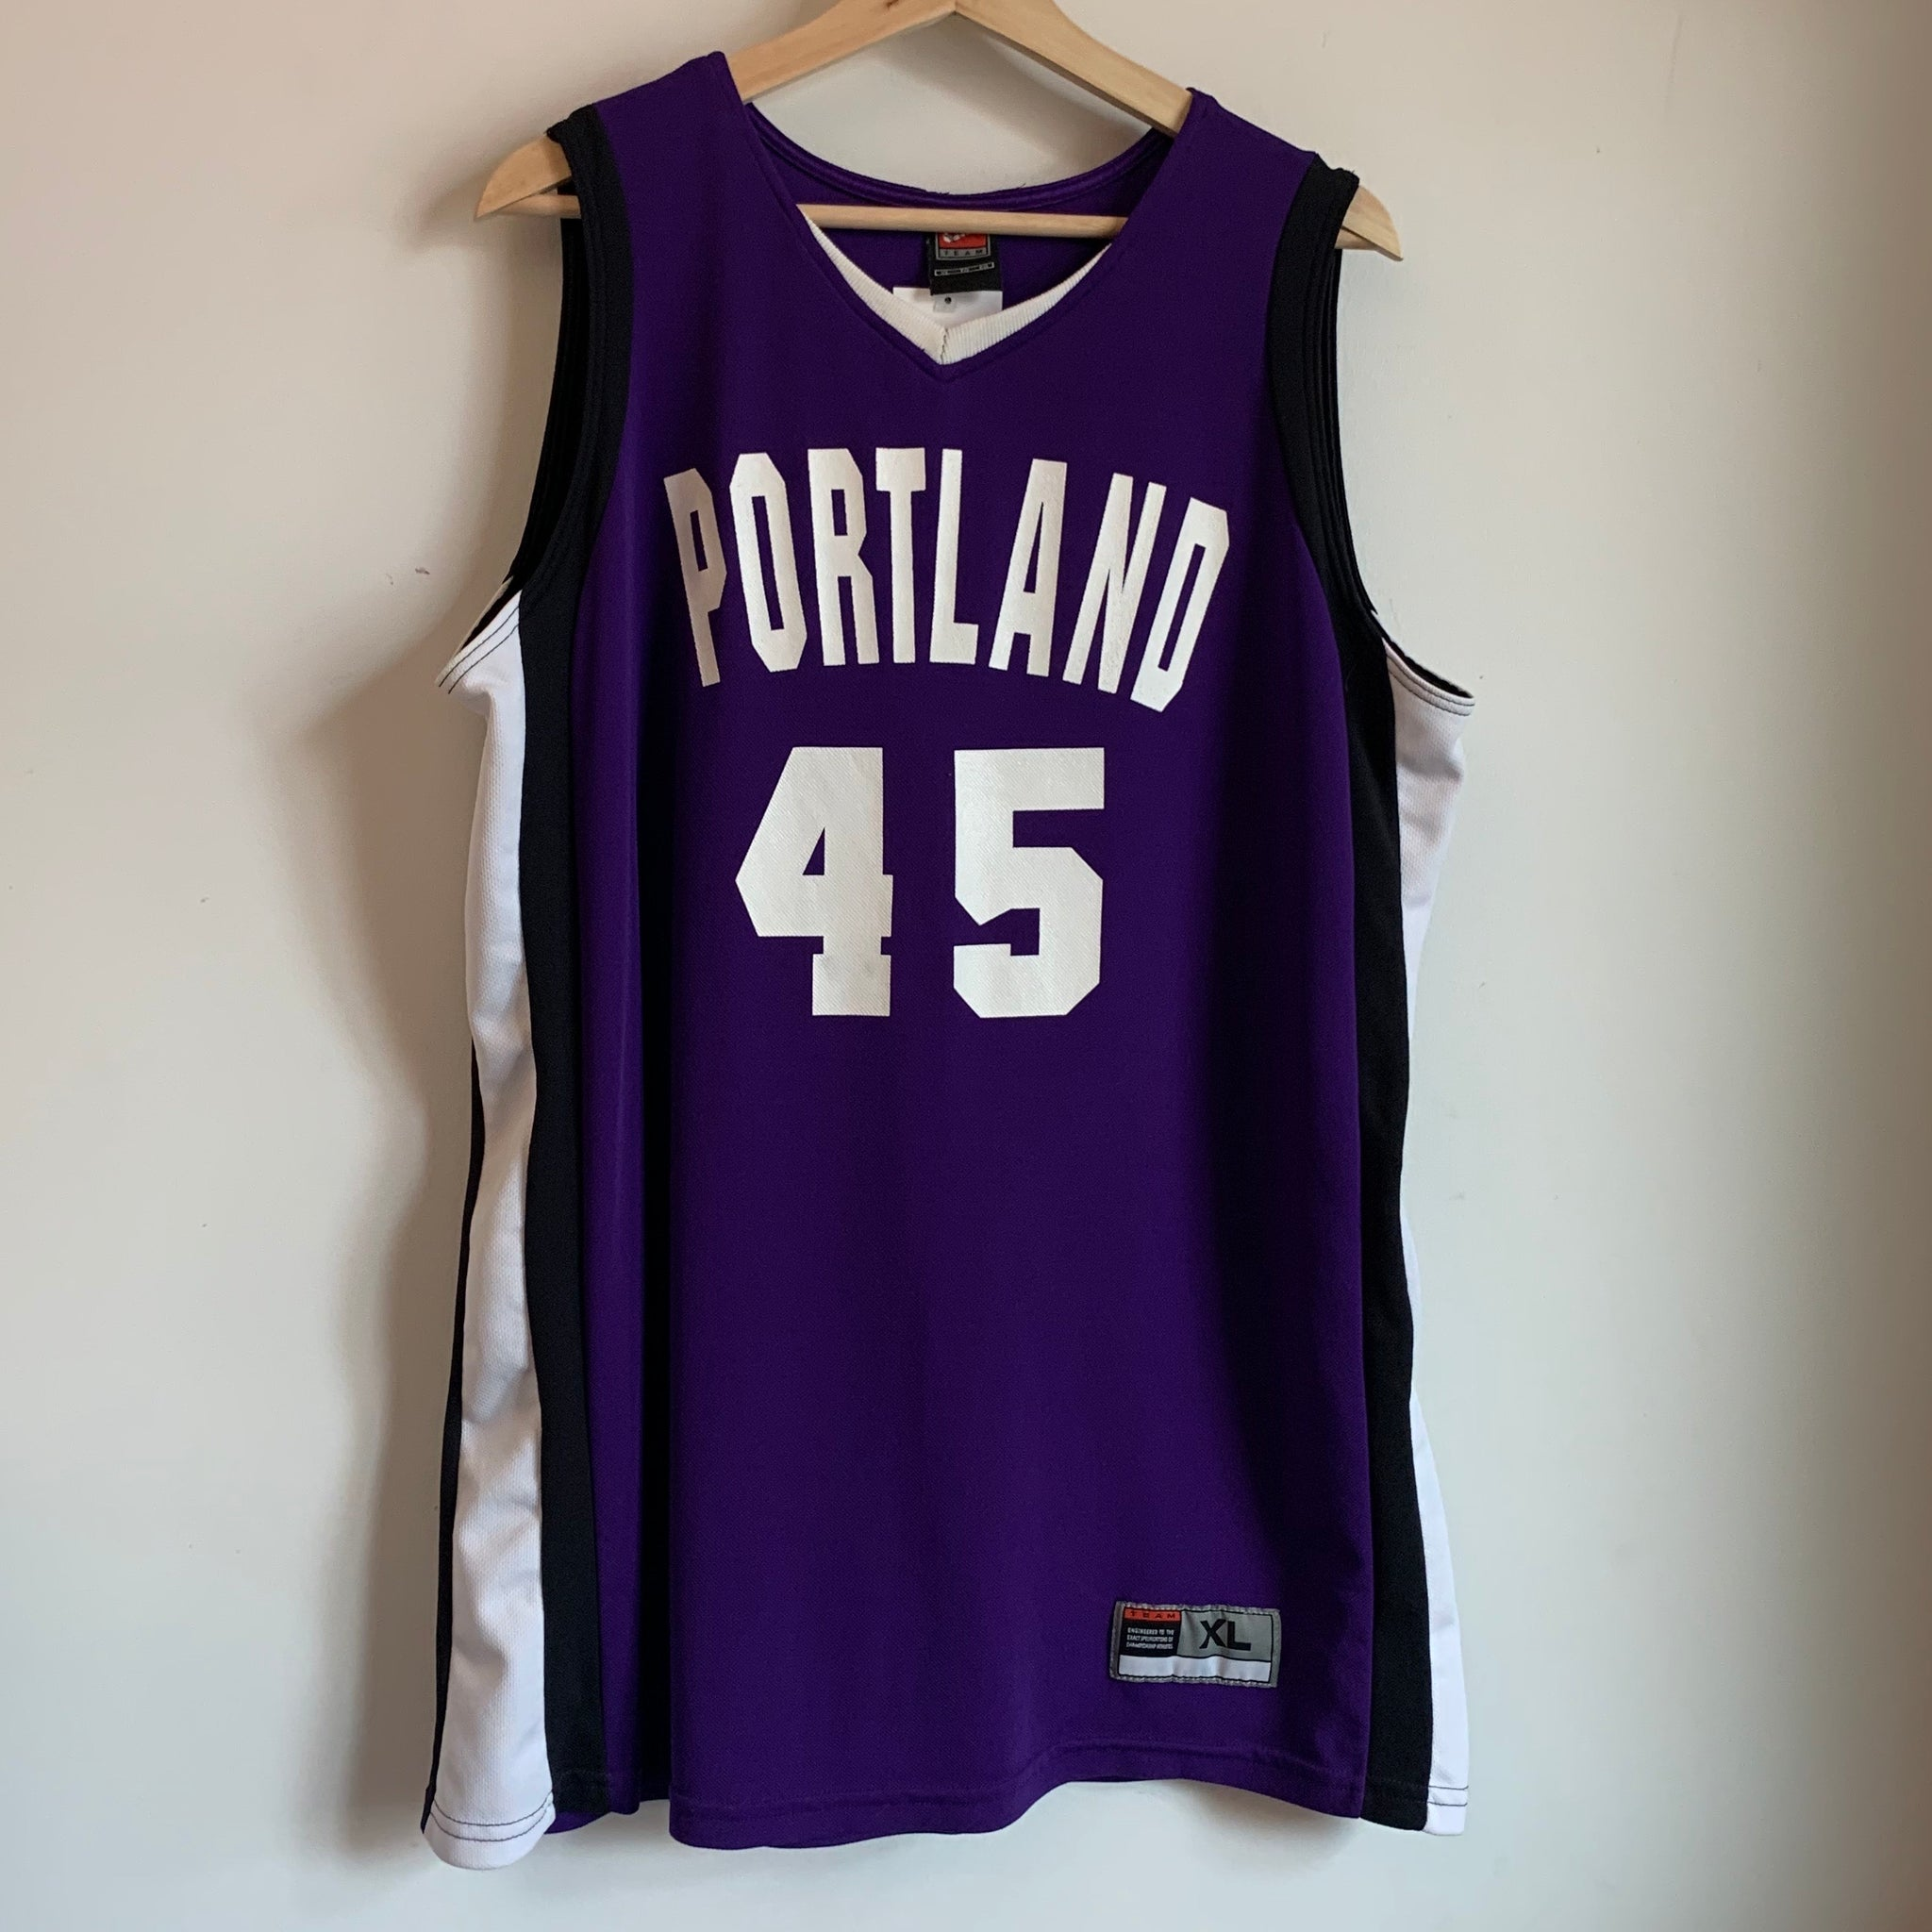 Nike Portland Pilots Team-Issued Basketball Jersey